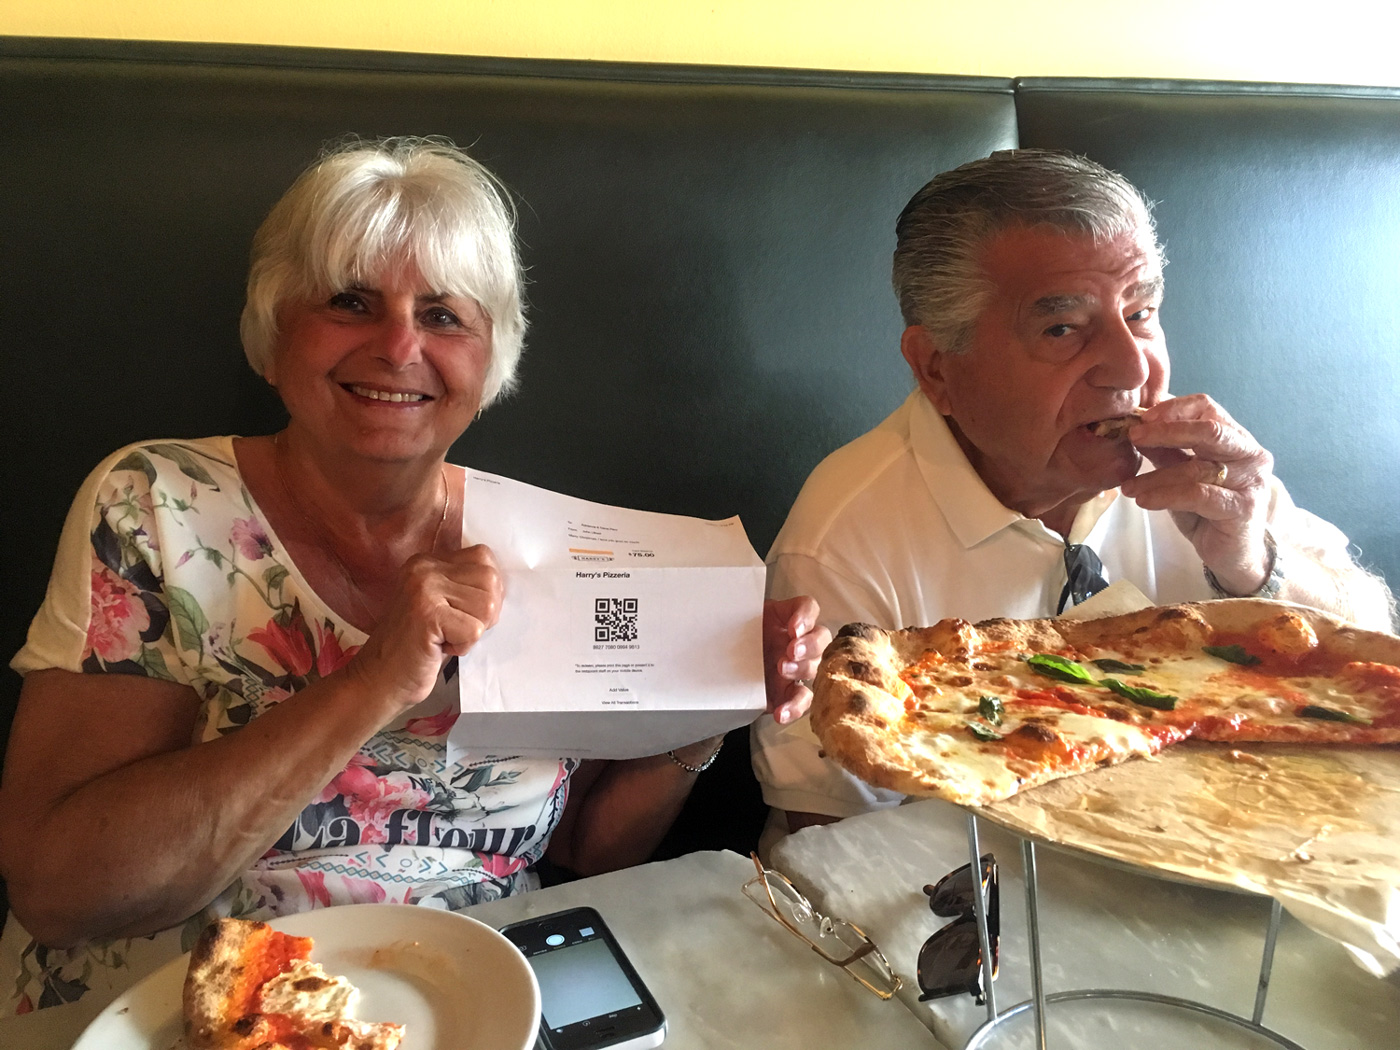 These two enjoying a gift certificate from their grandson, John, to their favorite eatery in Miami,  Harry's Pizzeria